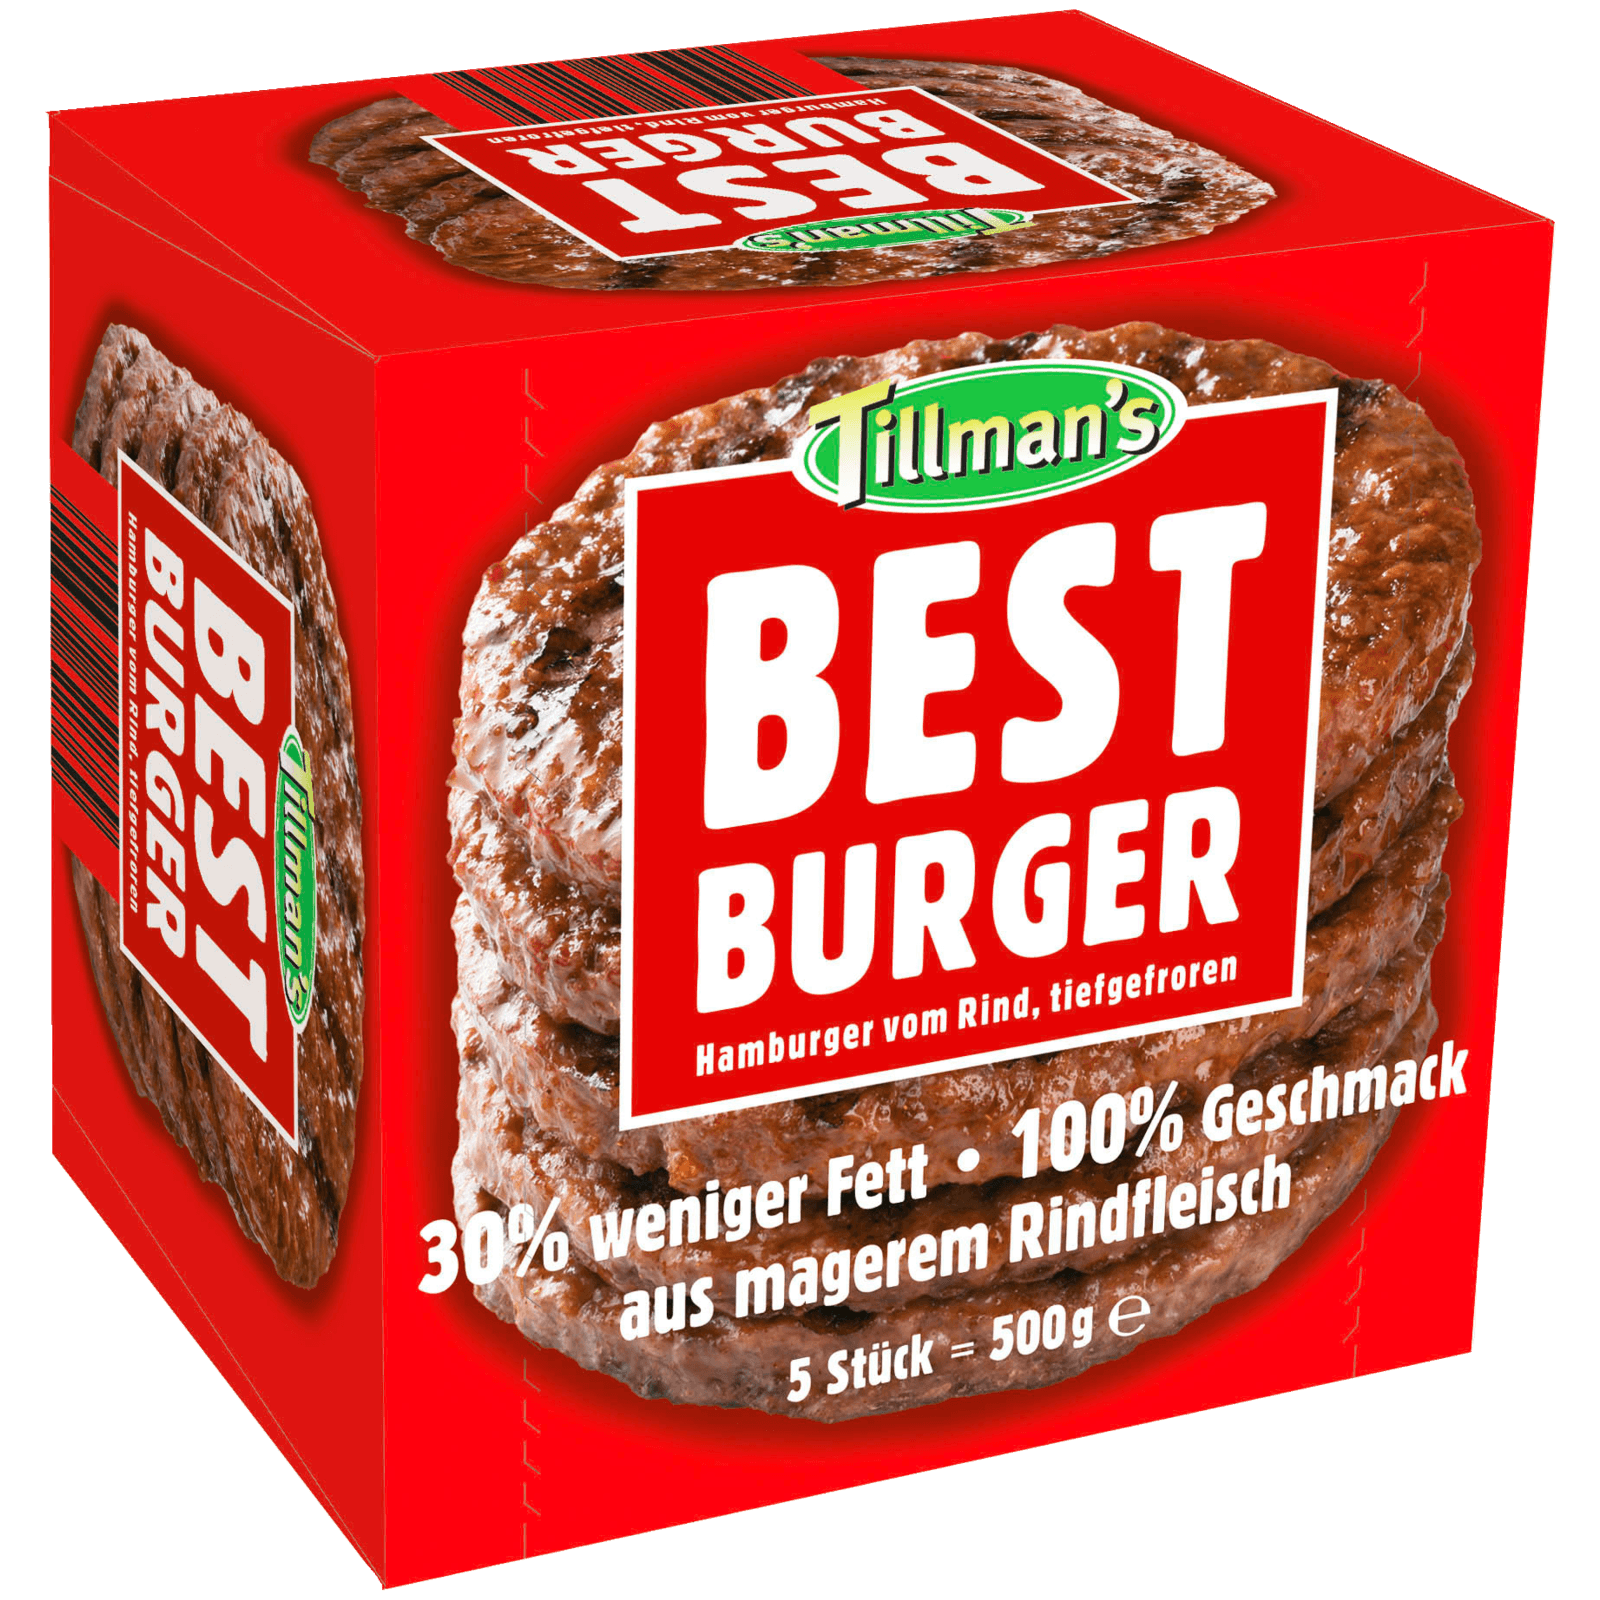 Tillman's Best Burger 500g